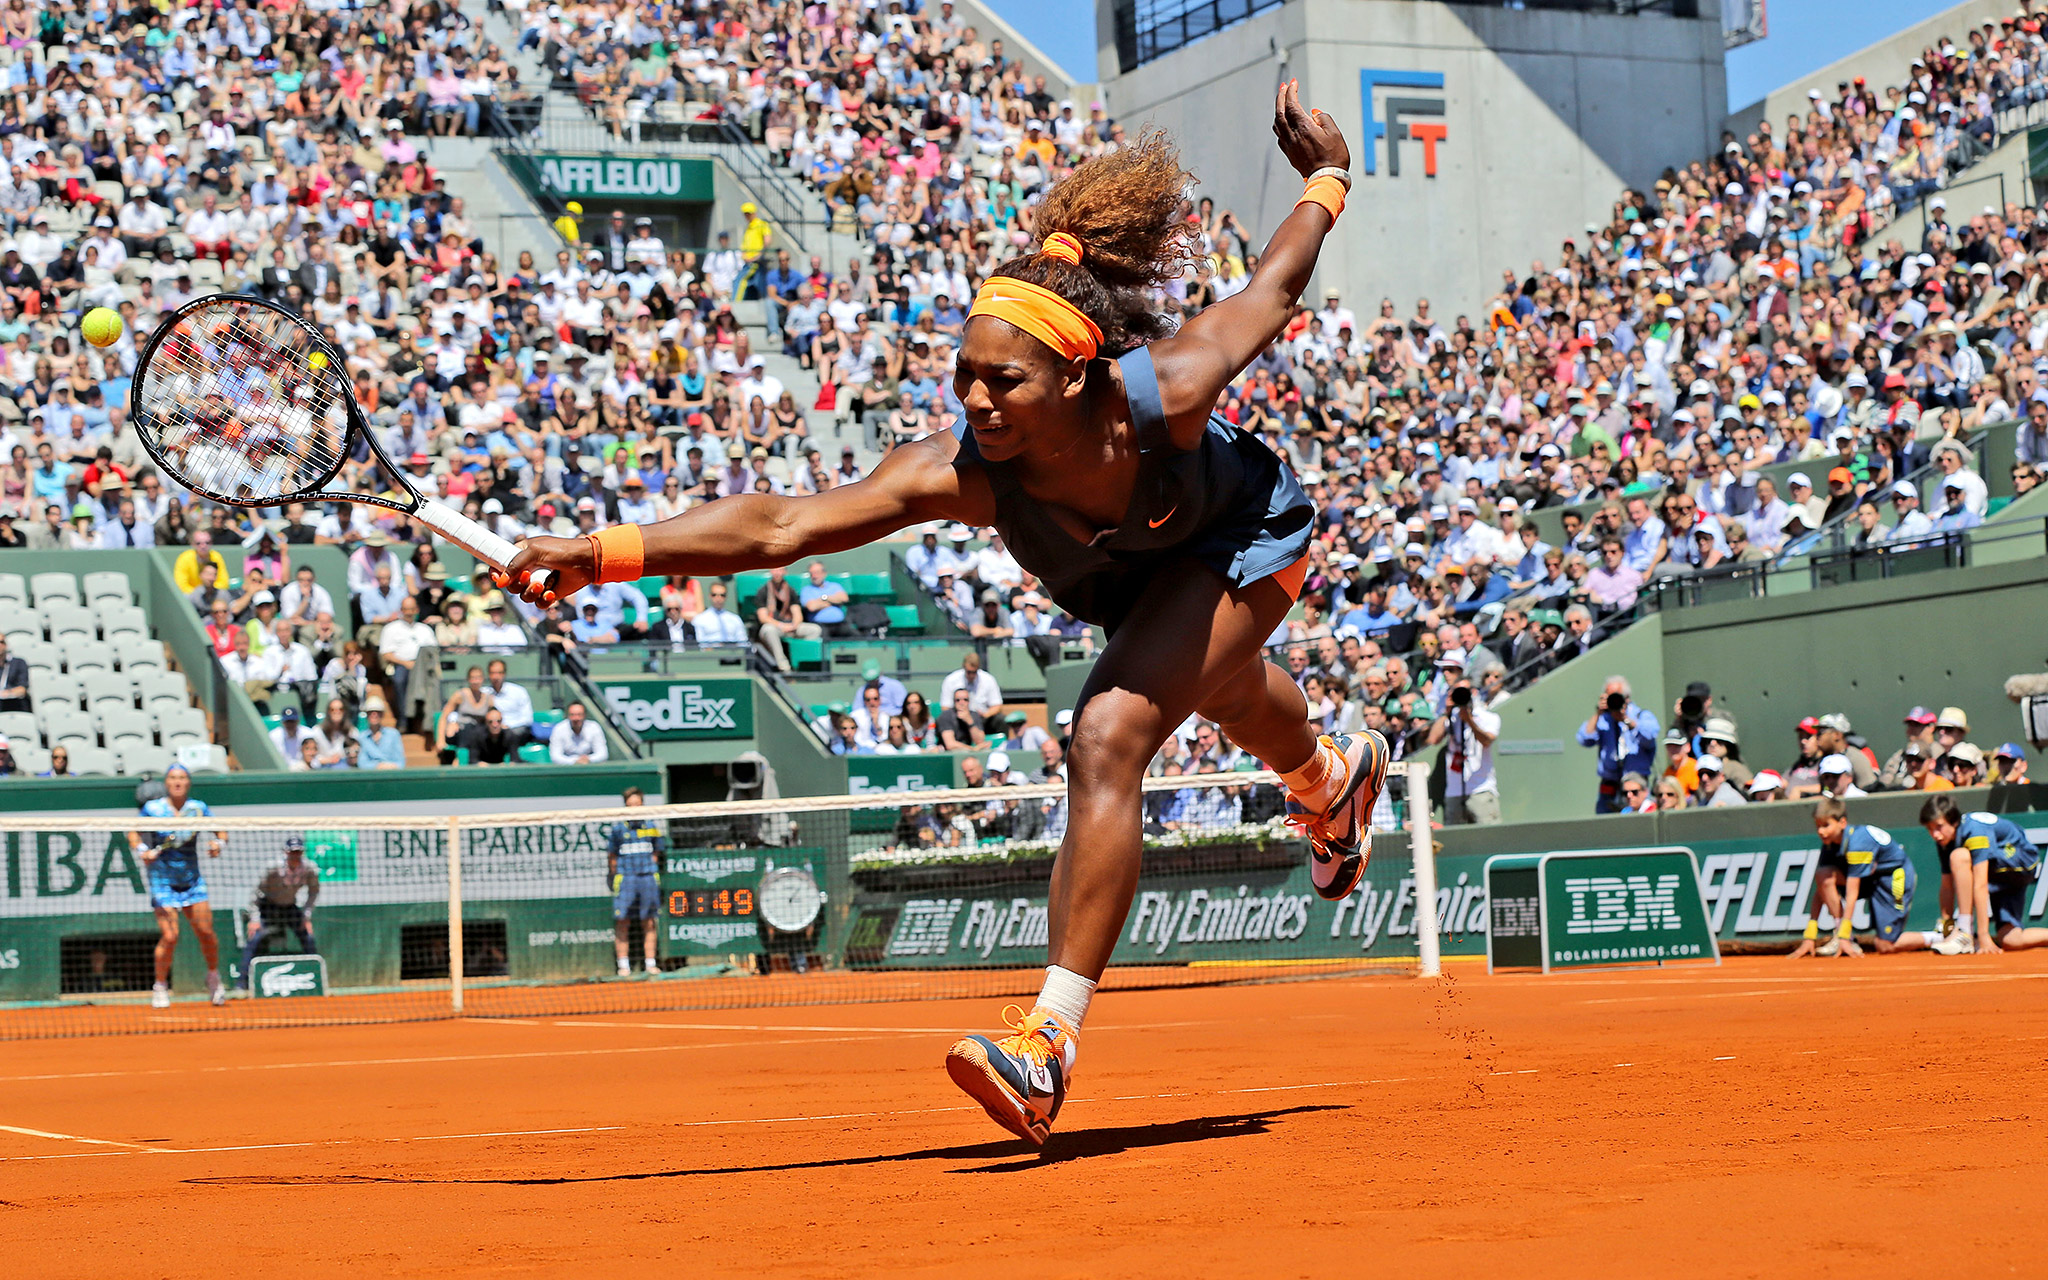 Impact 10: No. 1 Serena Williams